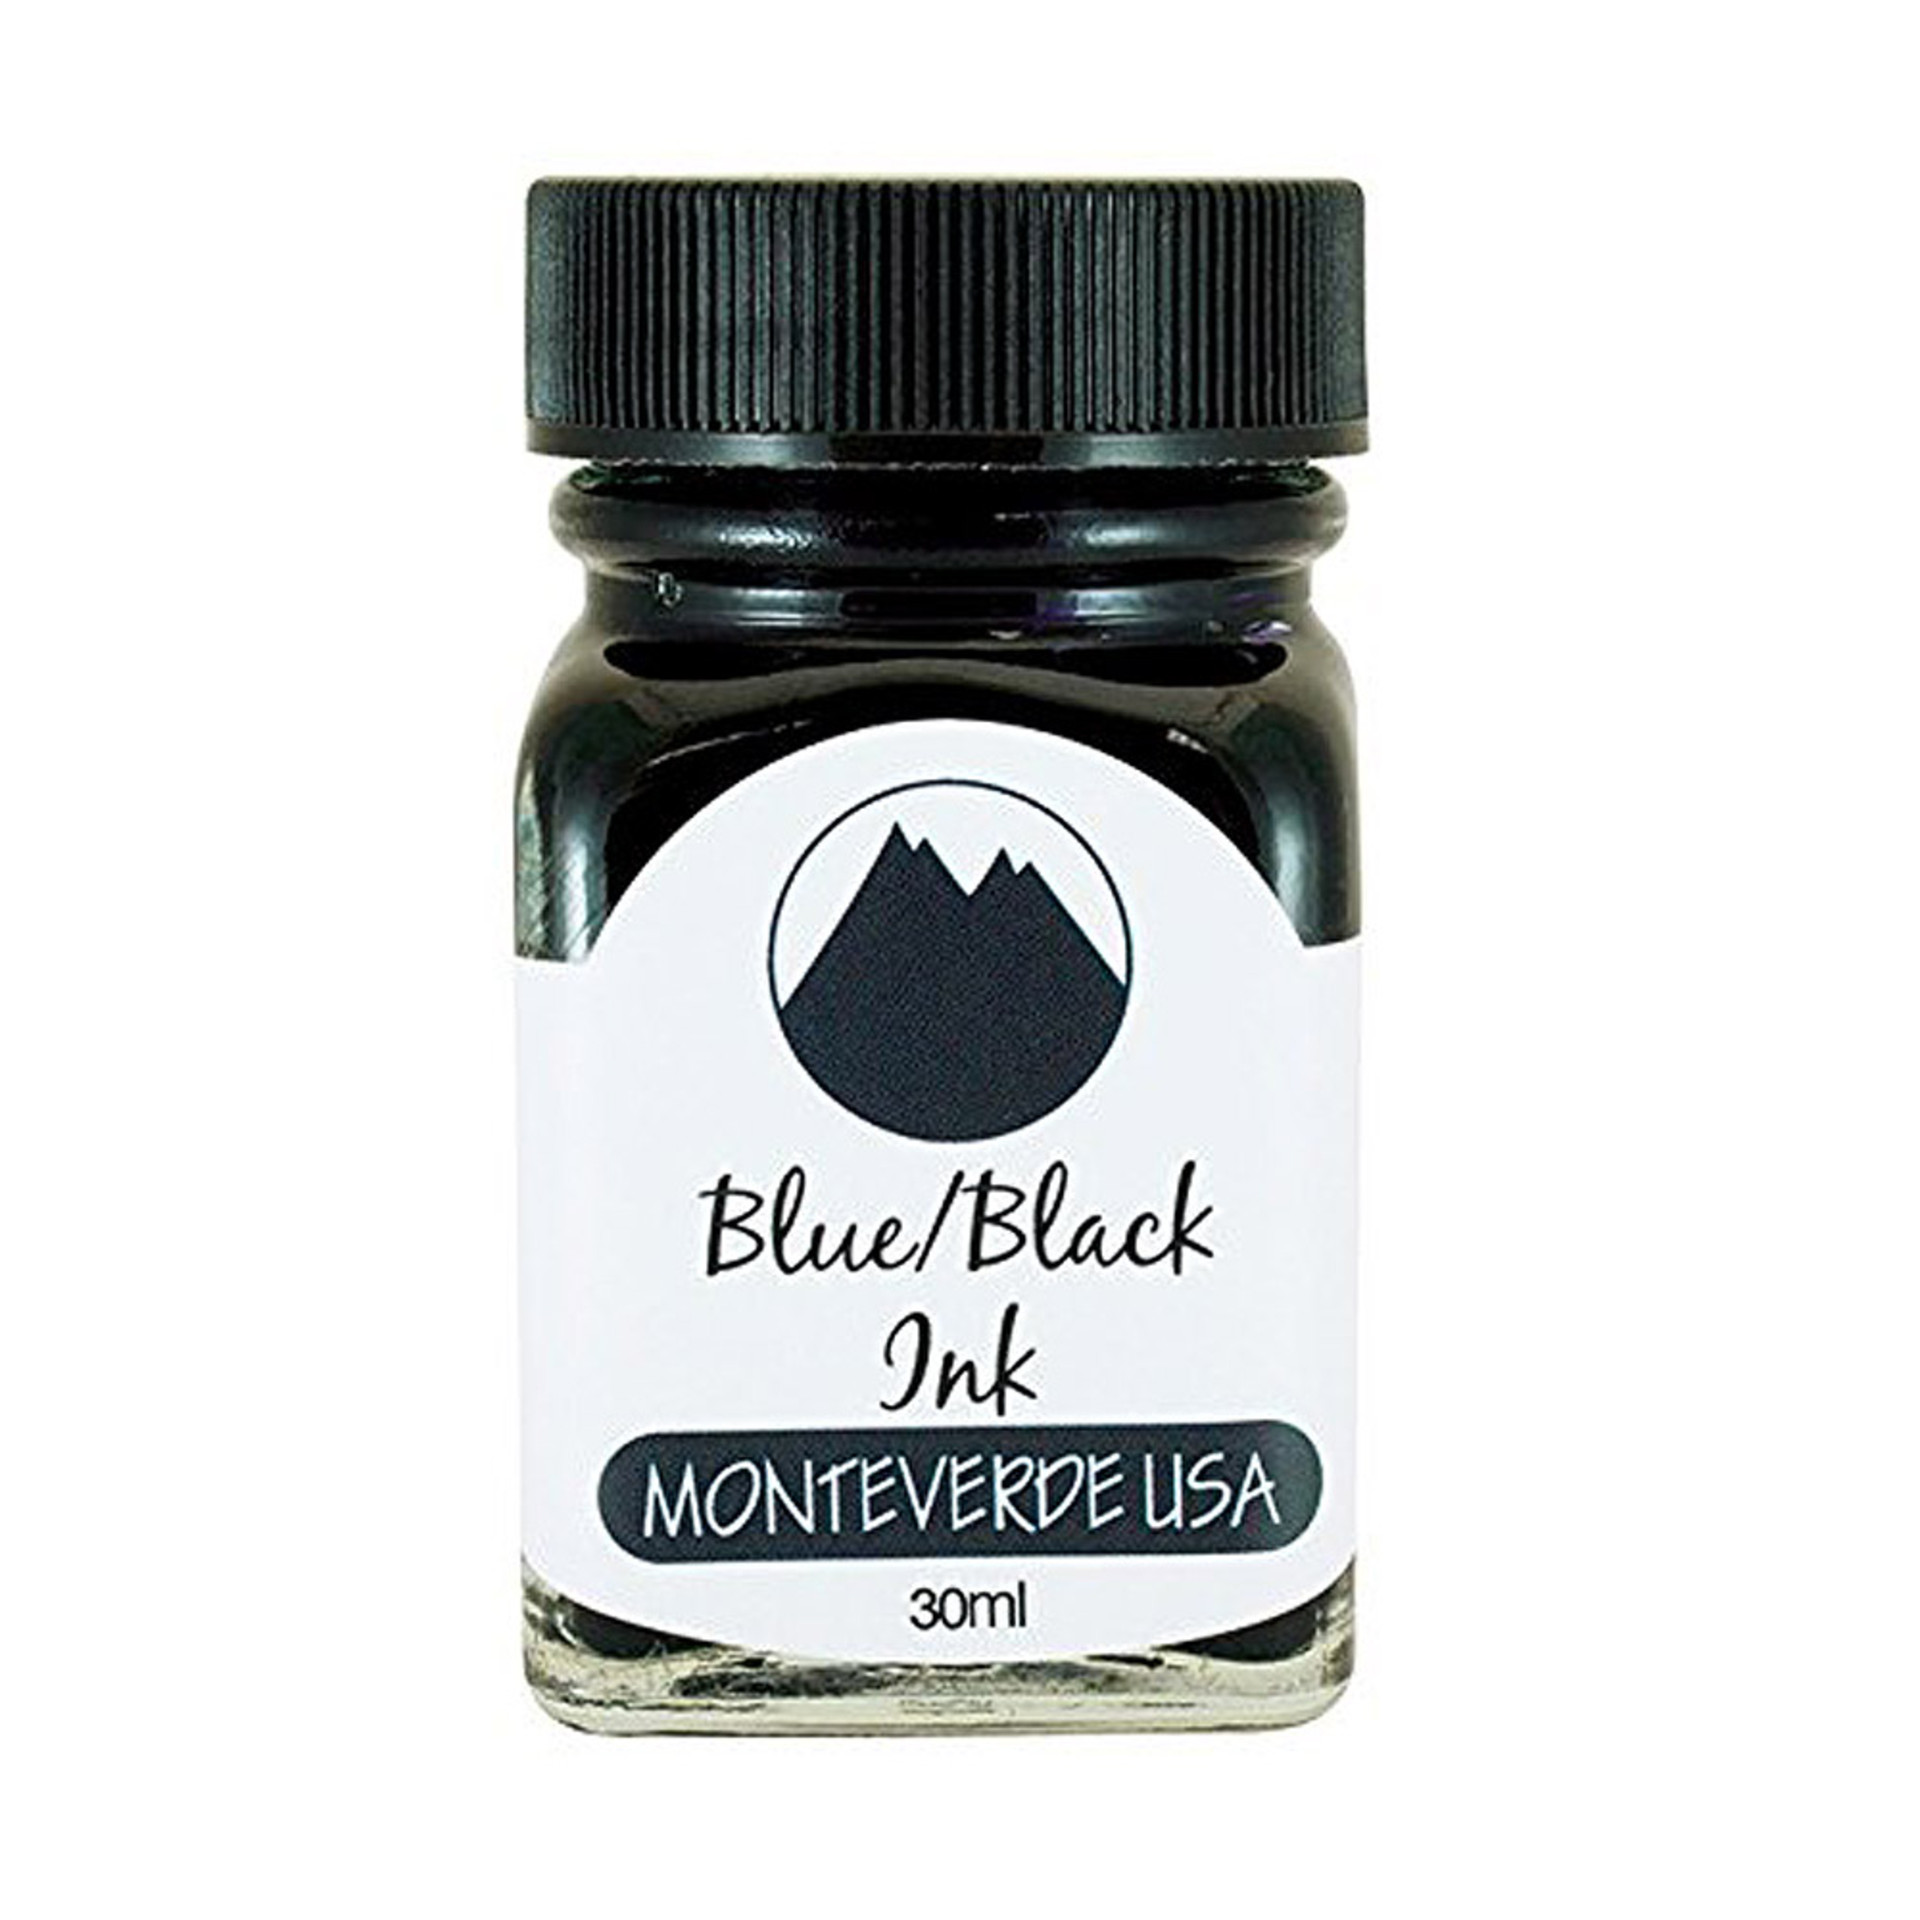 Monteverde 30ml Fountain Pen Ink Blue Black